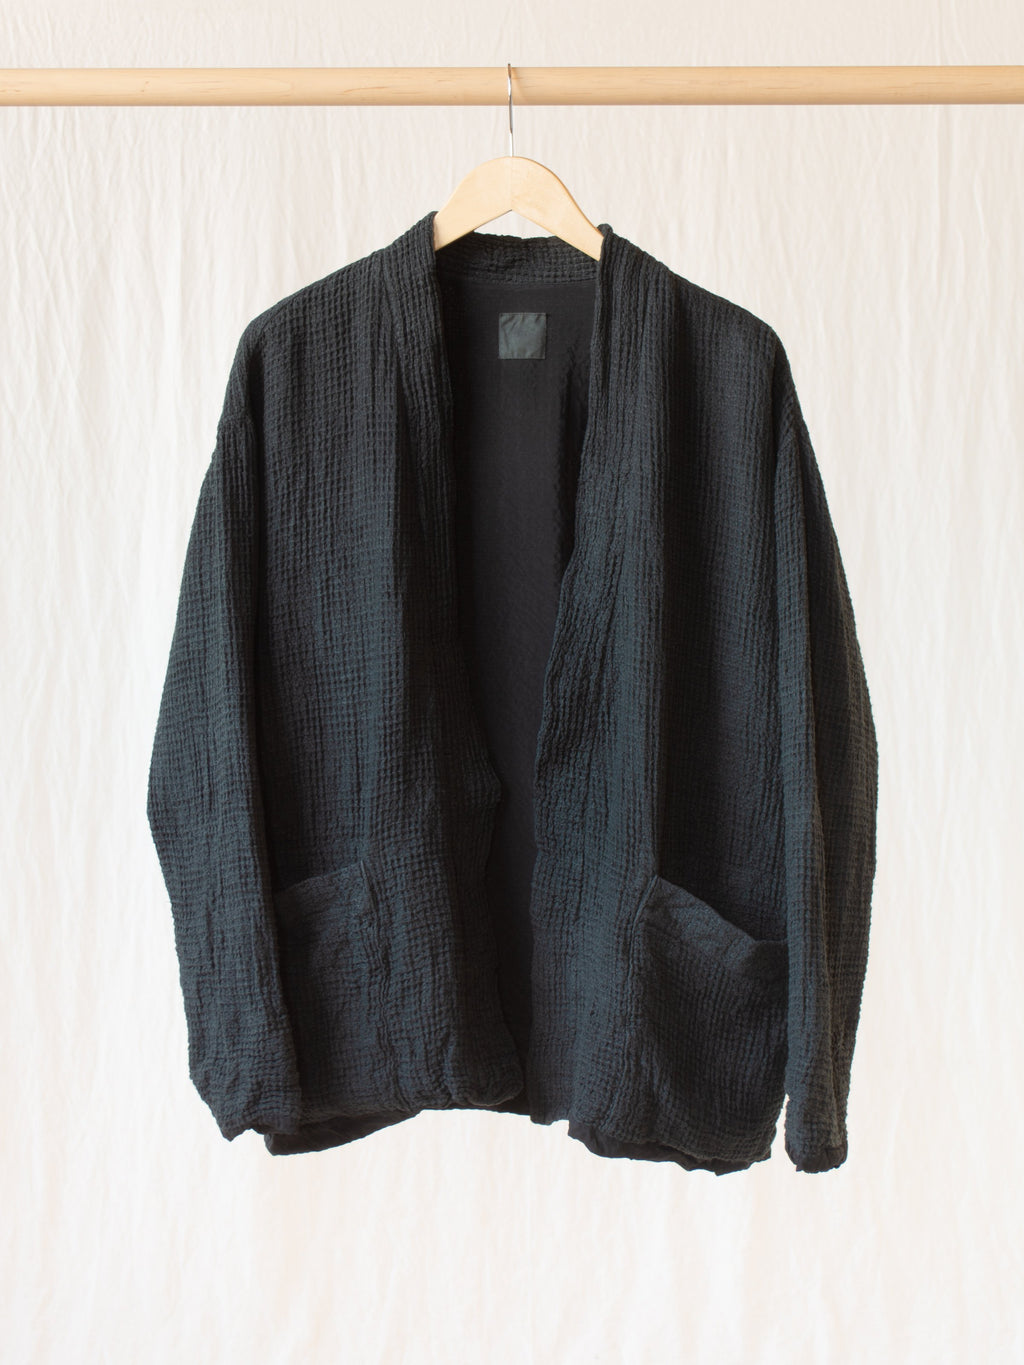 Namu Shop - ts(s) Garment Dyed Linen Waffle Easy Cardigan - Charcoal (Women's)